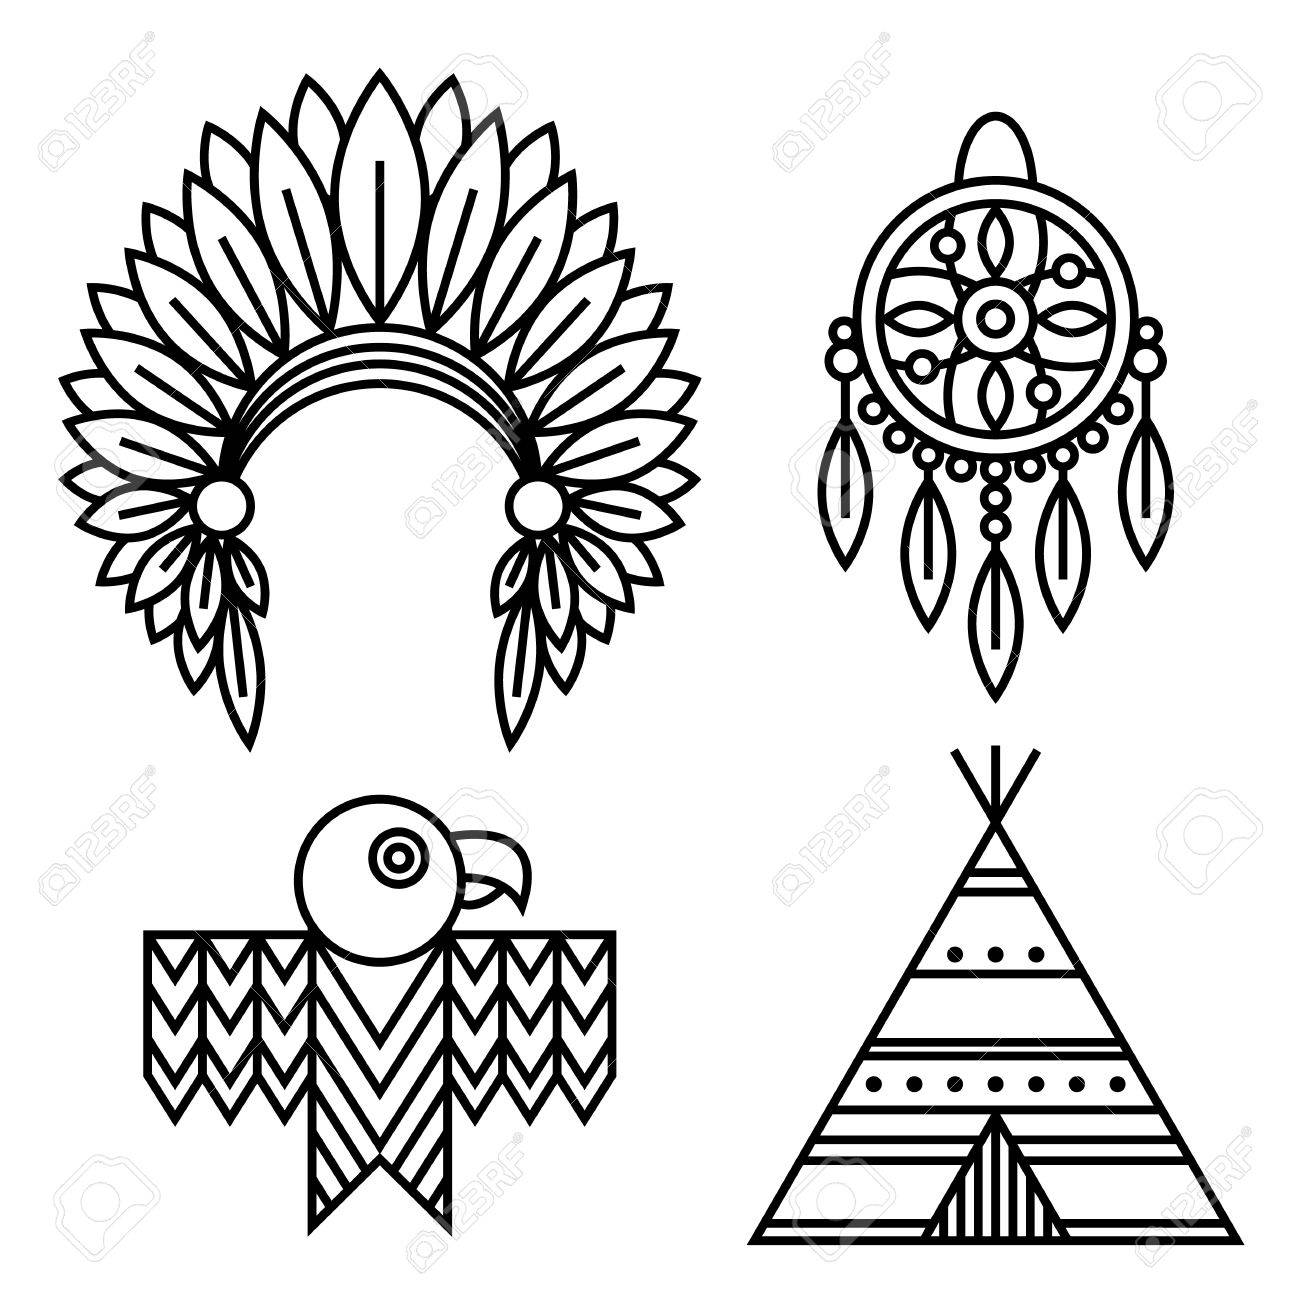 native american indians icons set linear style tribal symbols